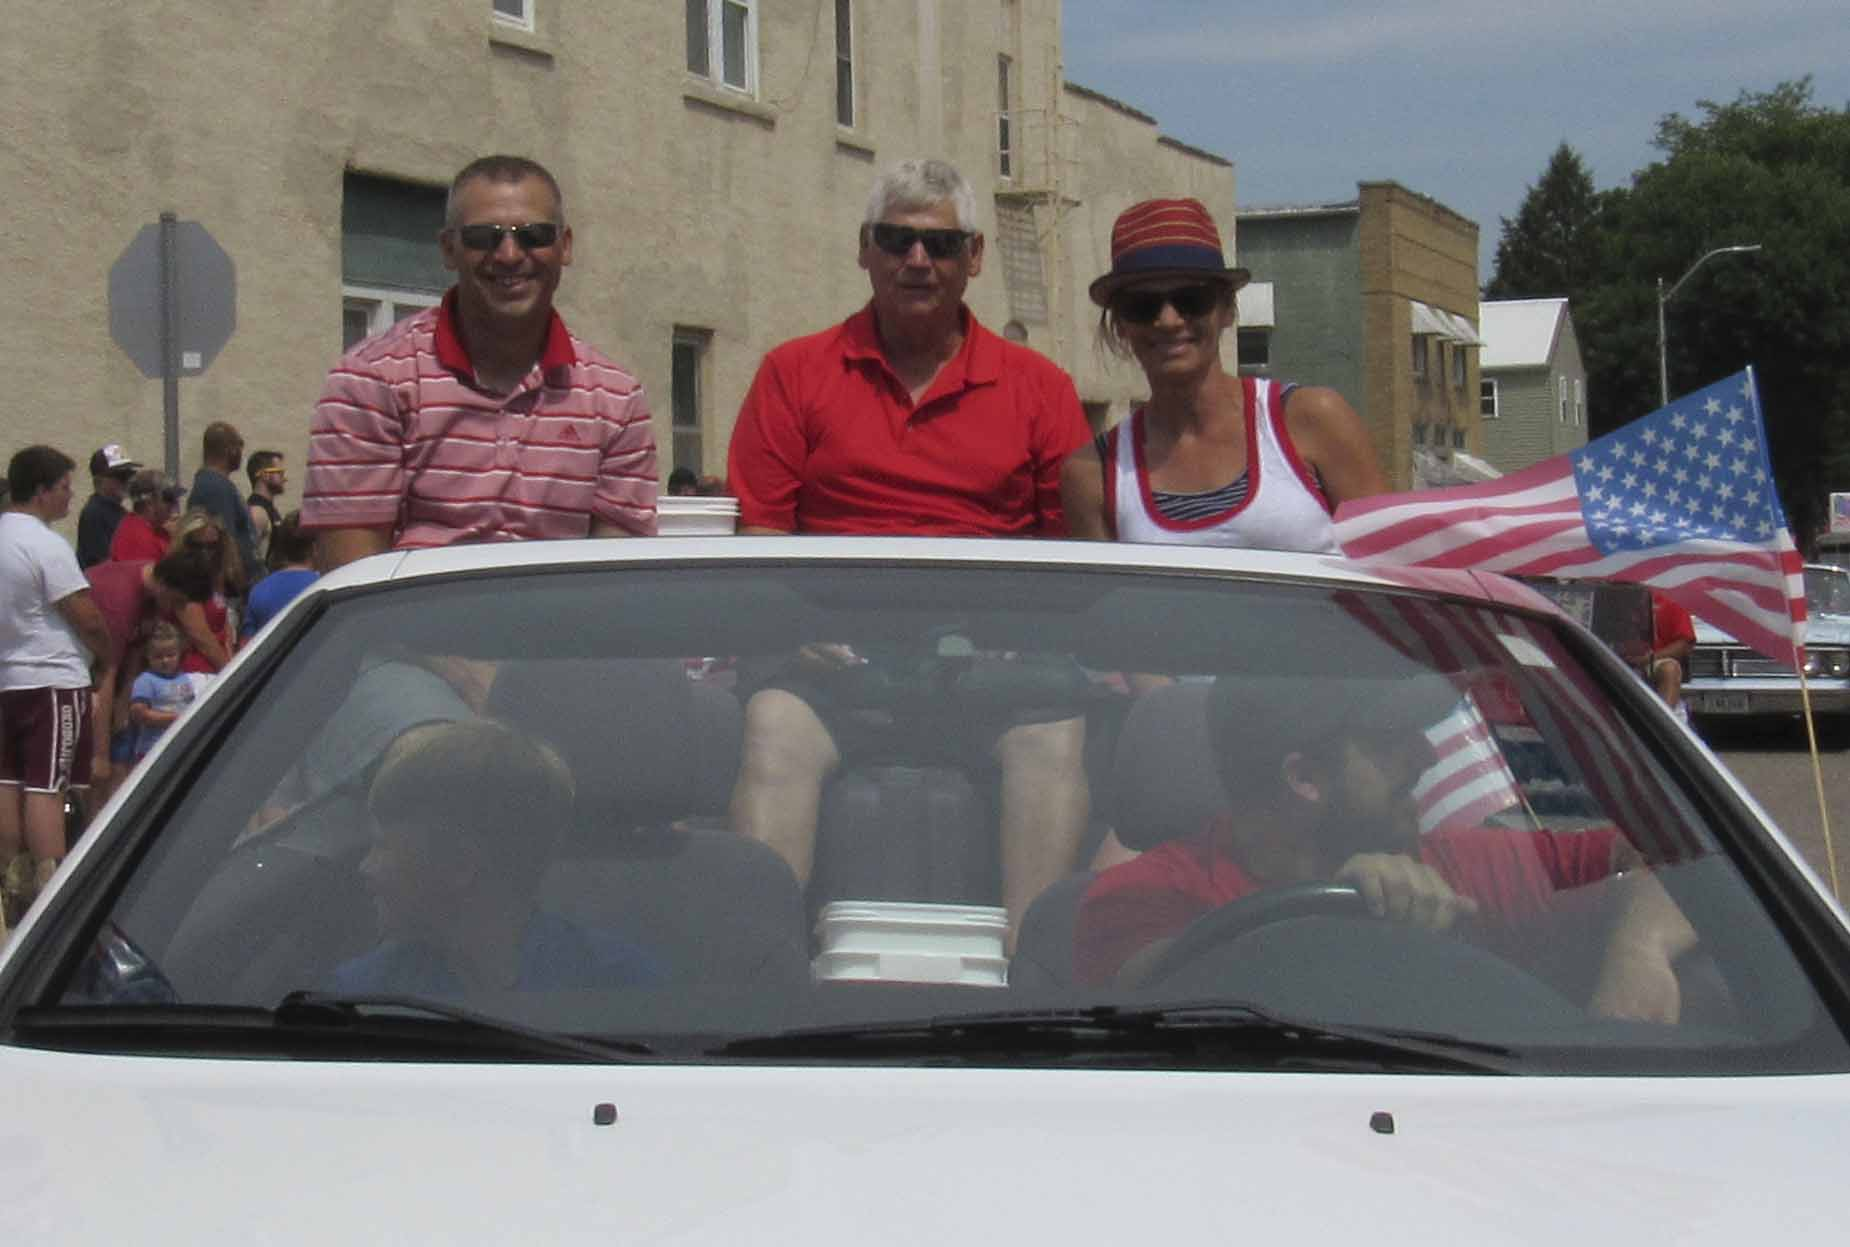 Scott Brighton, Roger Brighton and Becky (Brighton) Cooper were the grand marshals in Monticello's July 4 parade. They were honored for their service to the community. (Photo by Kim Brooks)